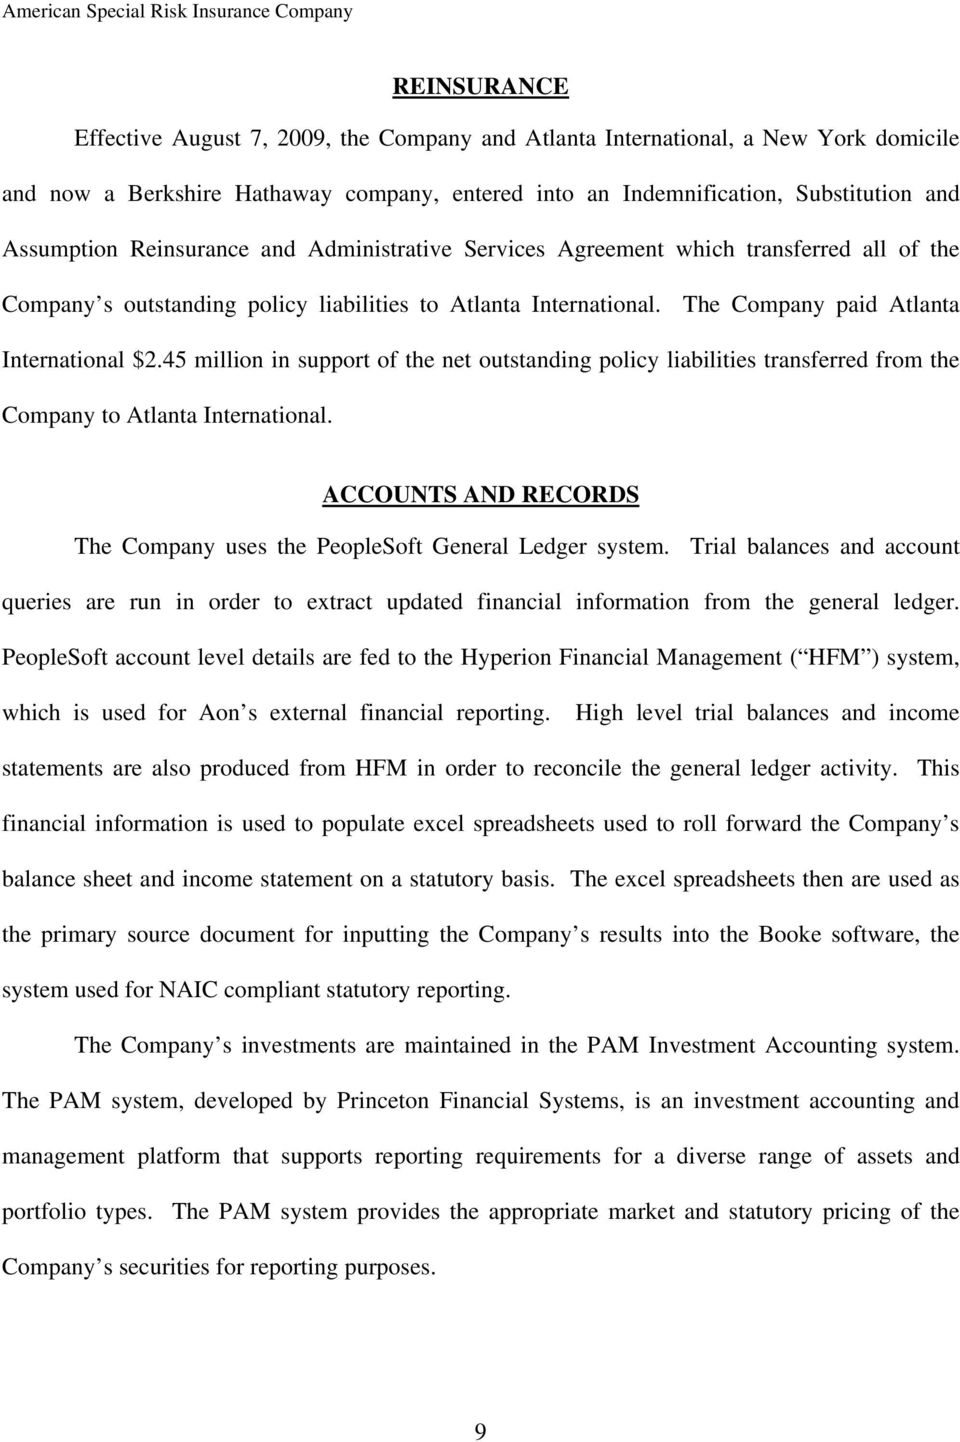 45 million in support of the net outstanding policy liabilities transferred from the Company to Atlanta International. ACCOUNTS AND RECORDS The Company uses the PeopleSoft General Ledger system.